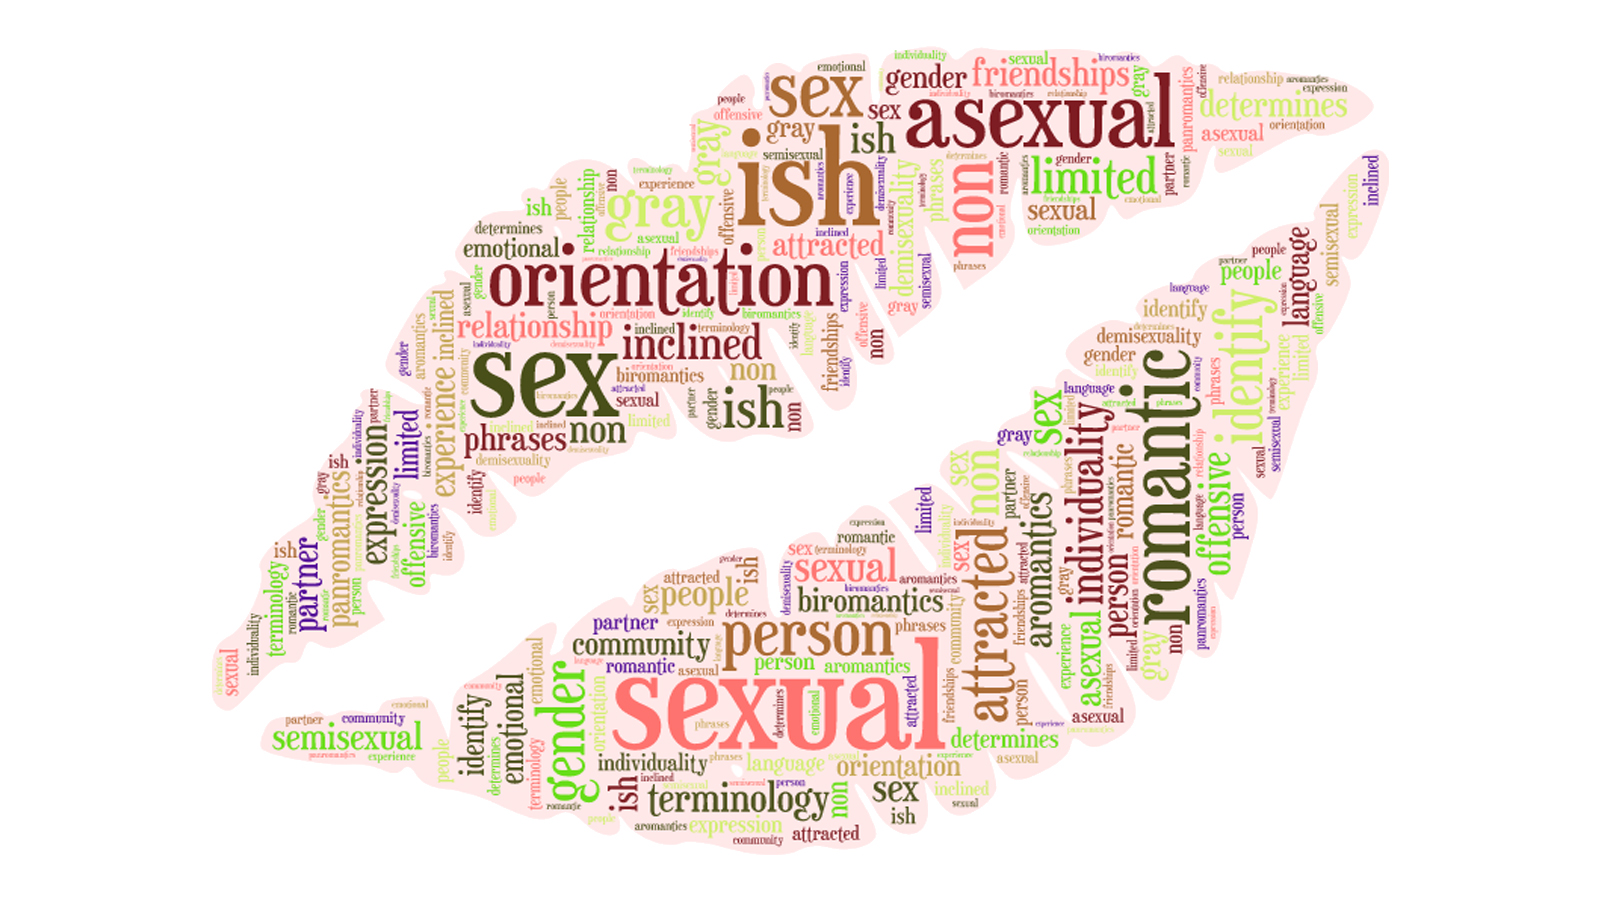 Asexual Identities